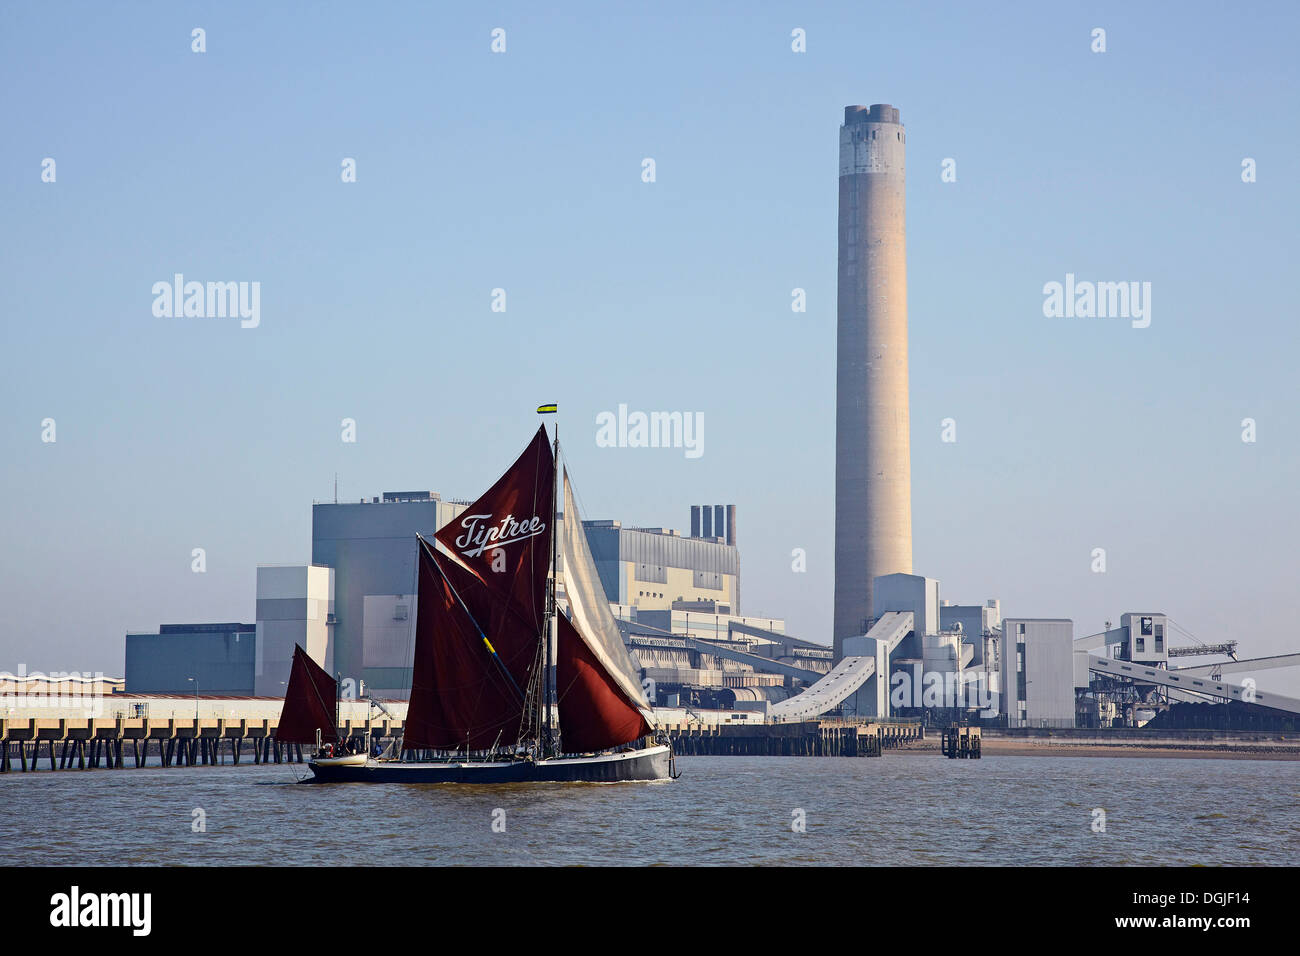 Saling barge Decima passes Kingsnorth Power station on the River Medway. - Stock Image